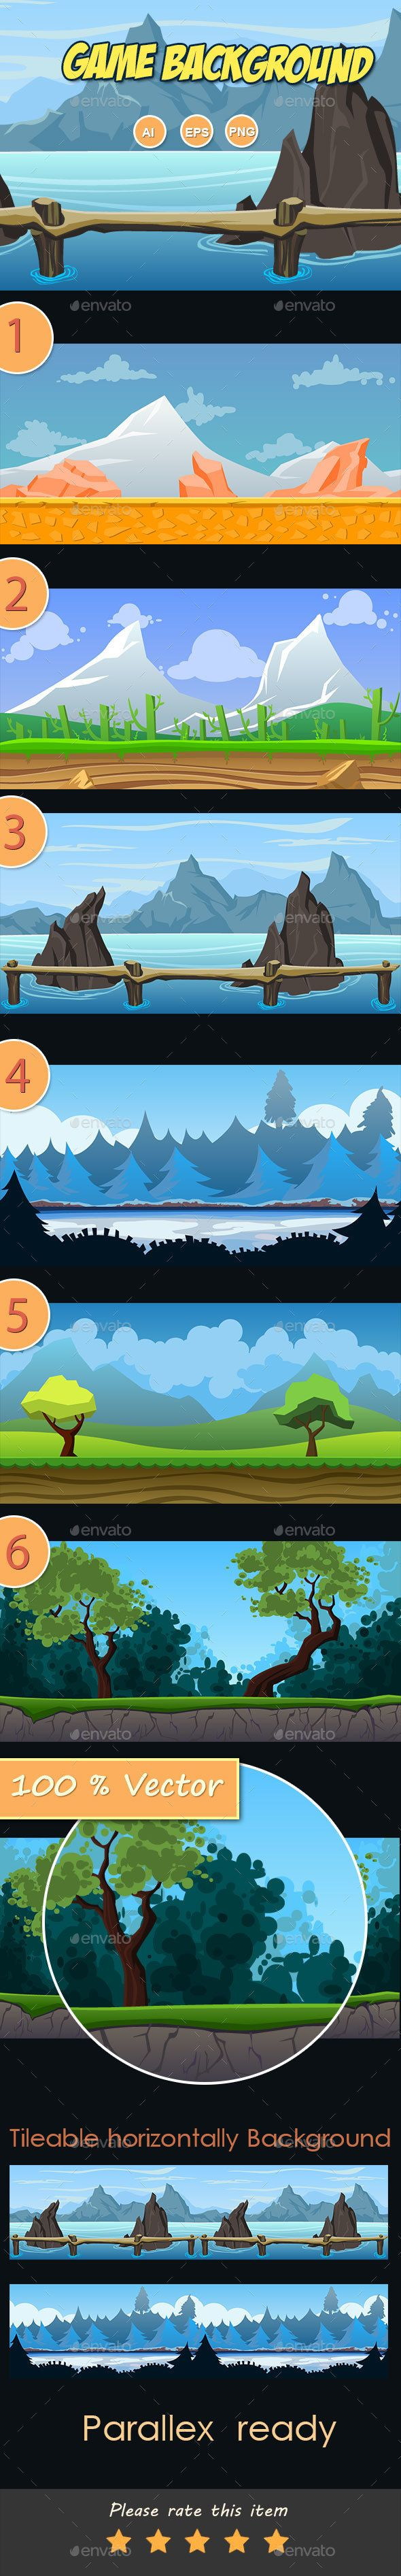 6 Fresh Game Background — Vector EPS #level game background #game • Available here → https://graphicriver.net/item/6-fresh-game-background-/14207953?ref=pxcr